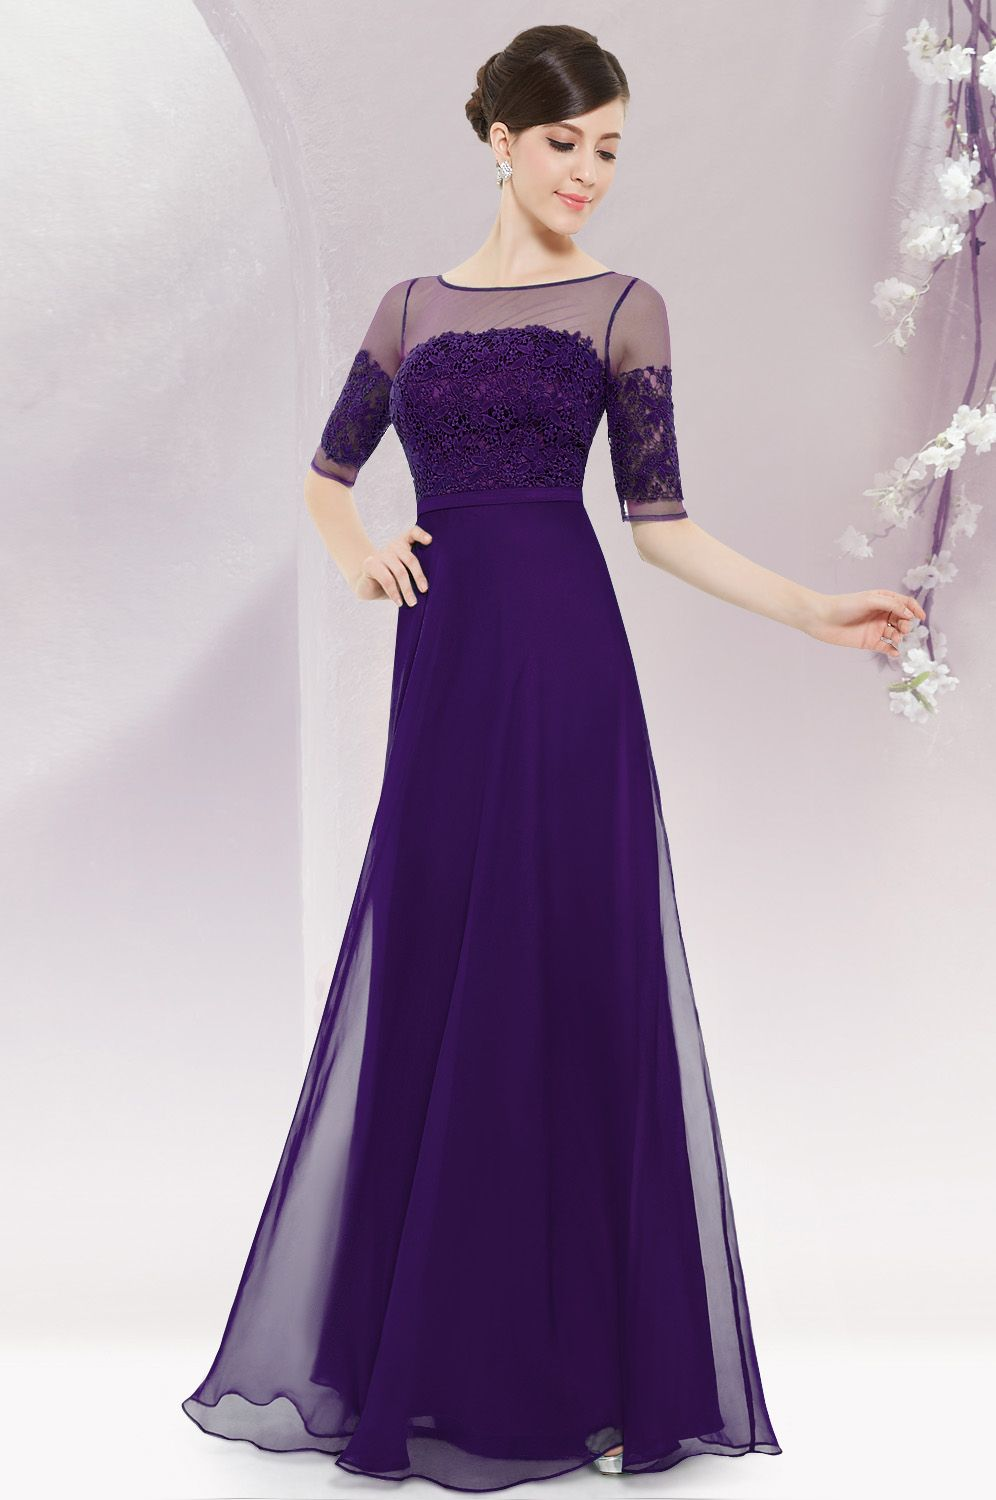 Long sleeve illusion neckline evening dress more maxi for Purple maxi dresses for weddings